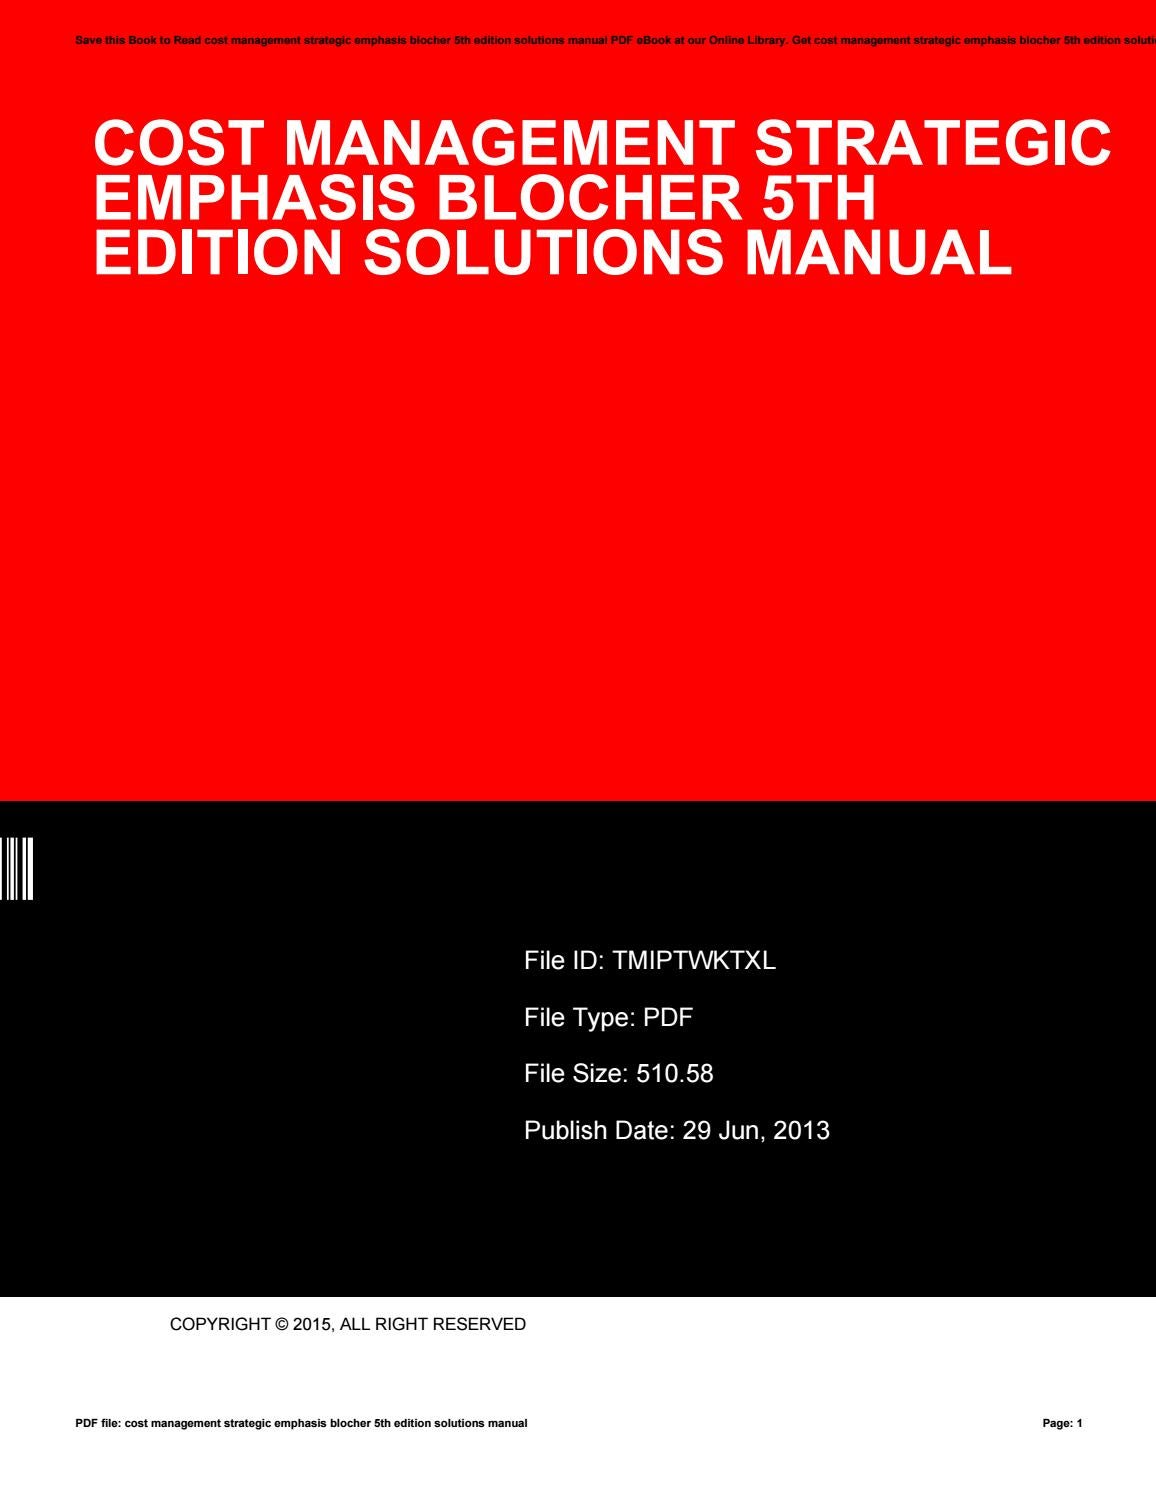 Cost management a strategic emphasis solutions manual.